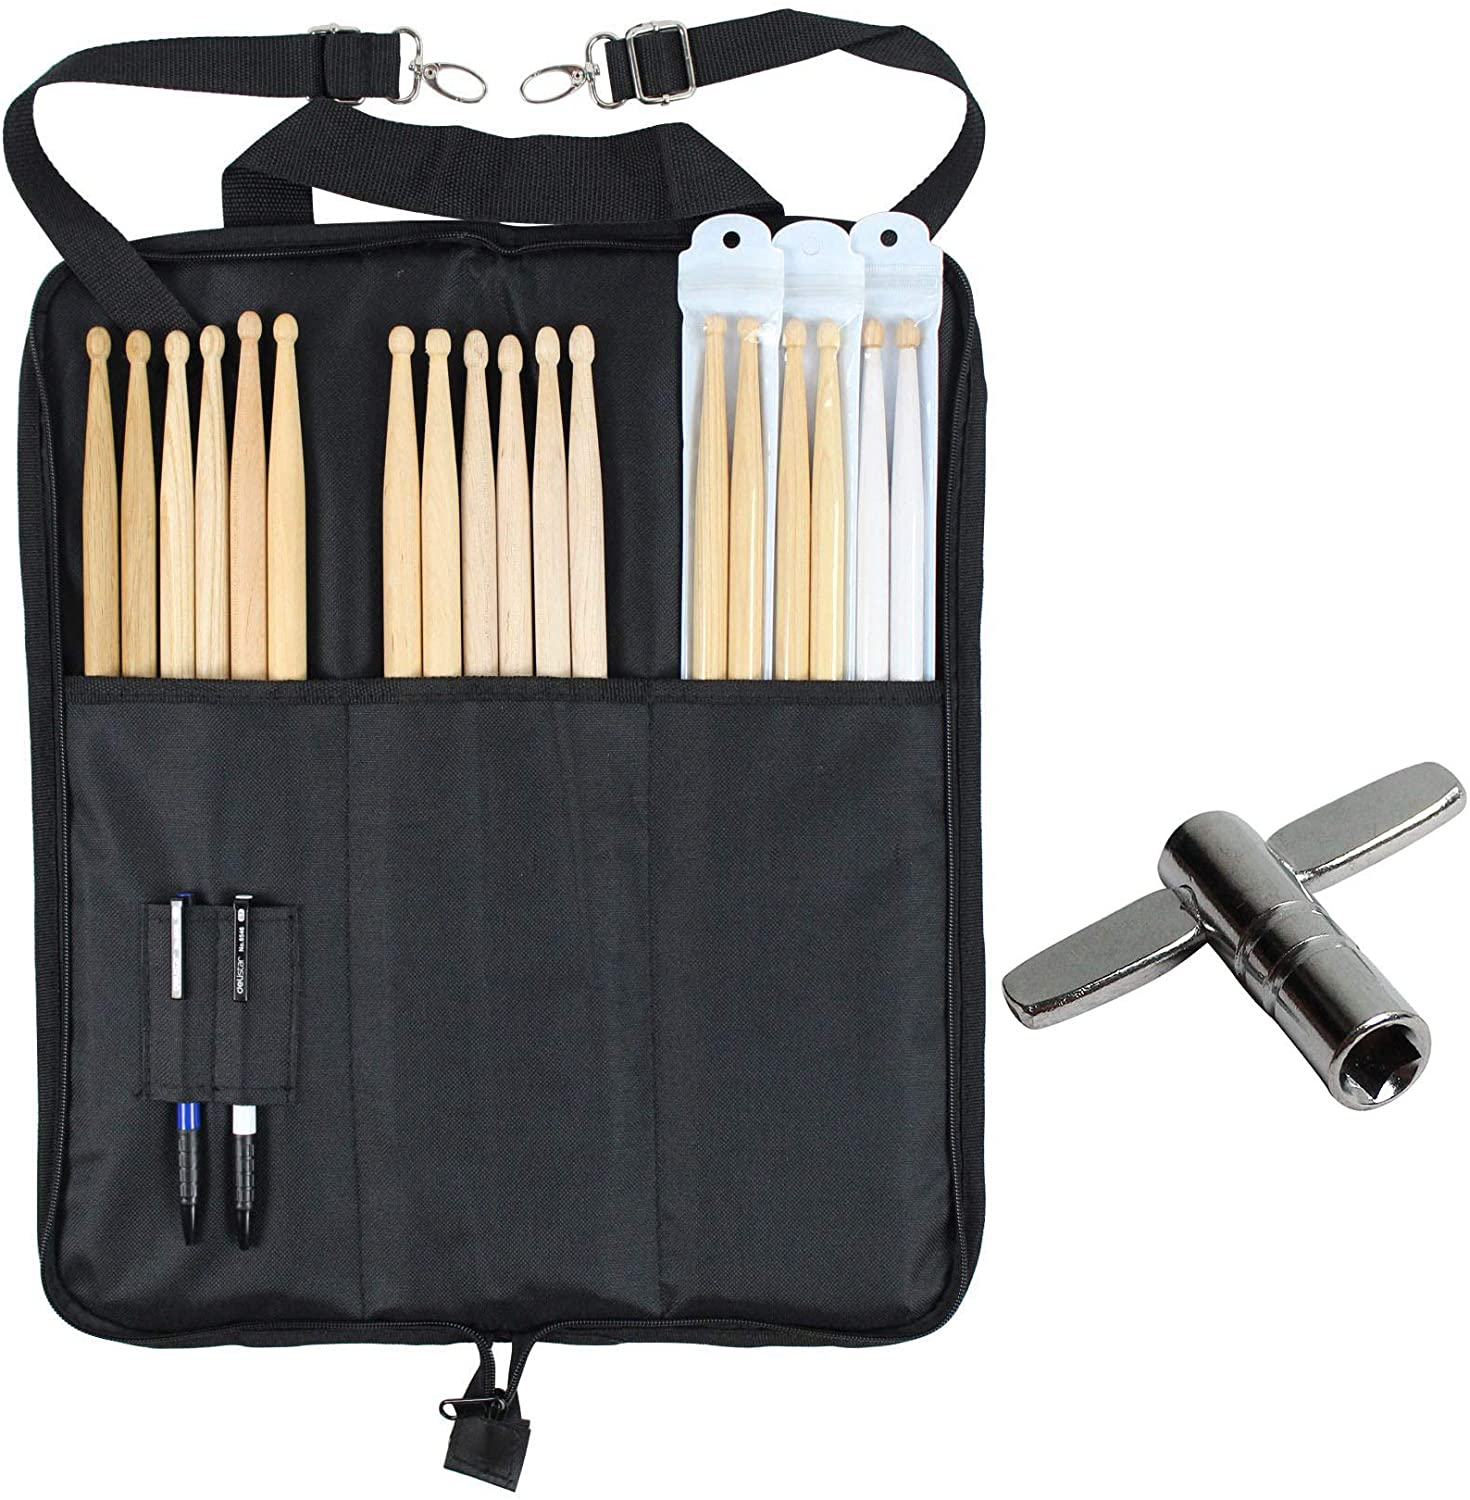 YMC DSB10-BK 10mm Foam Drum Stick Bag Holder Mallet Bag Drumstick Bag with A Drum Key